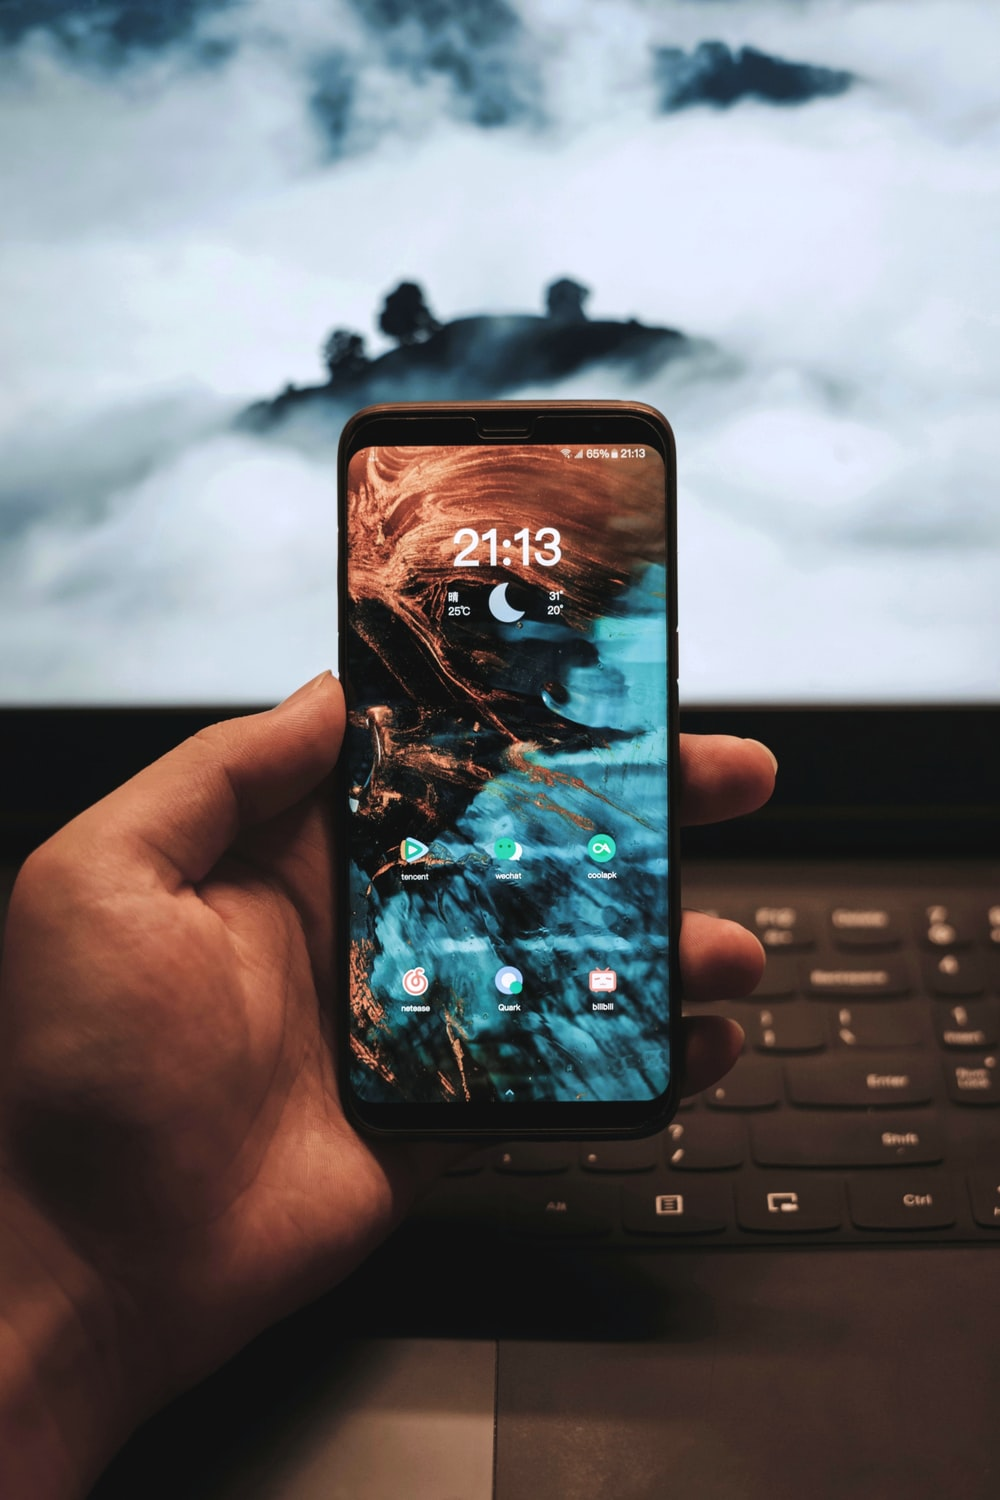 person holding smartphone showing 21:13 clock